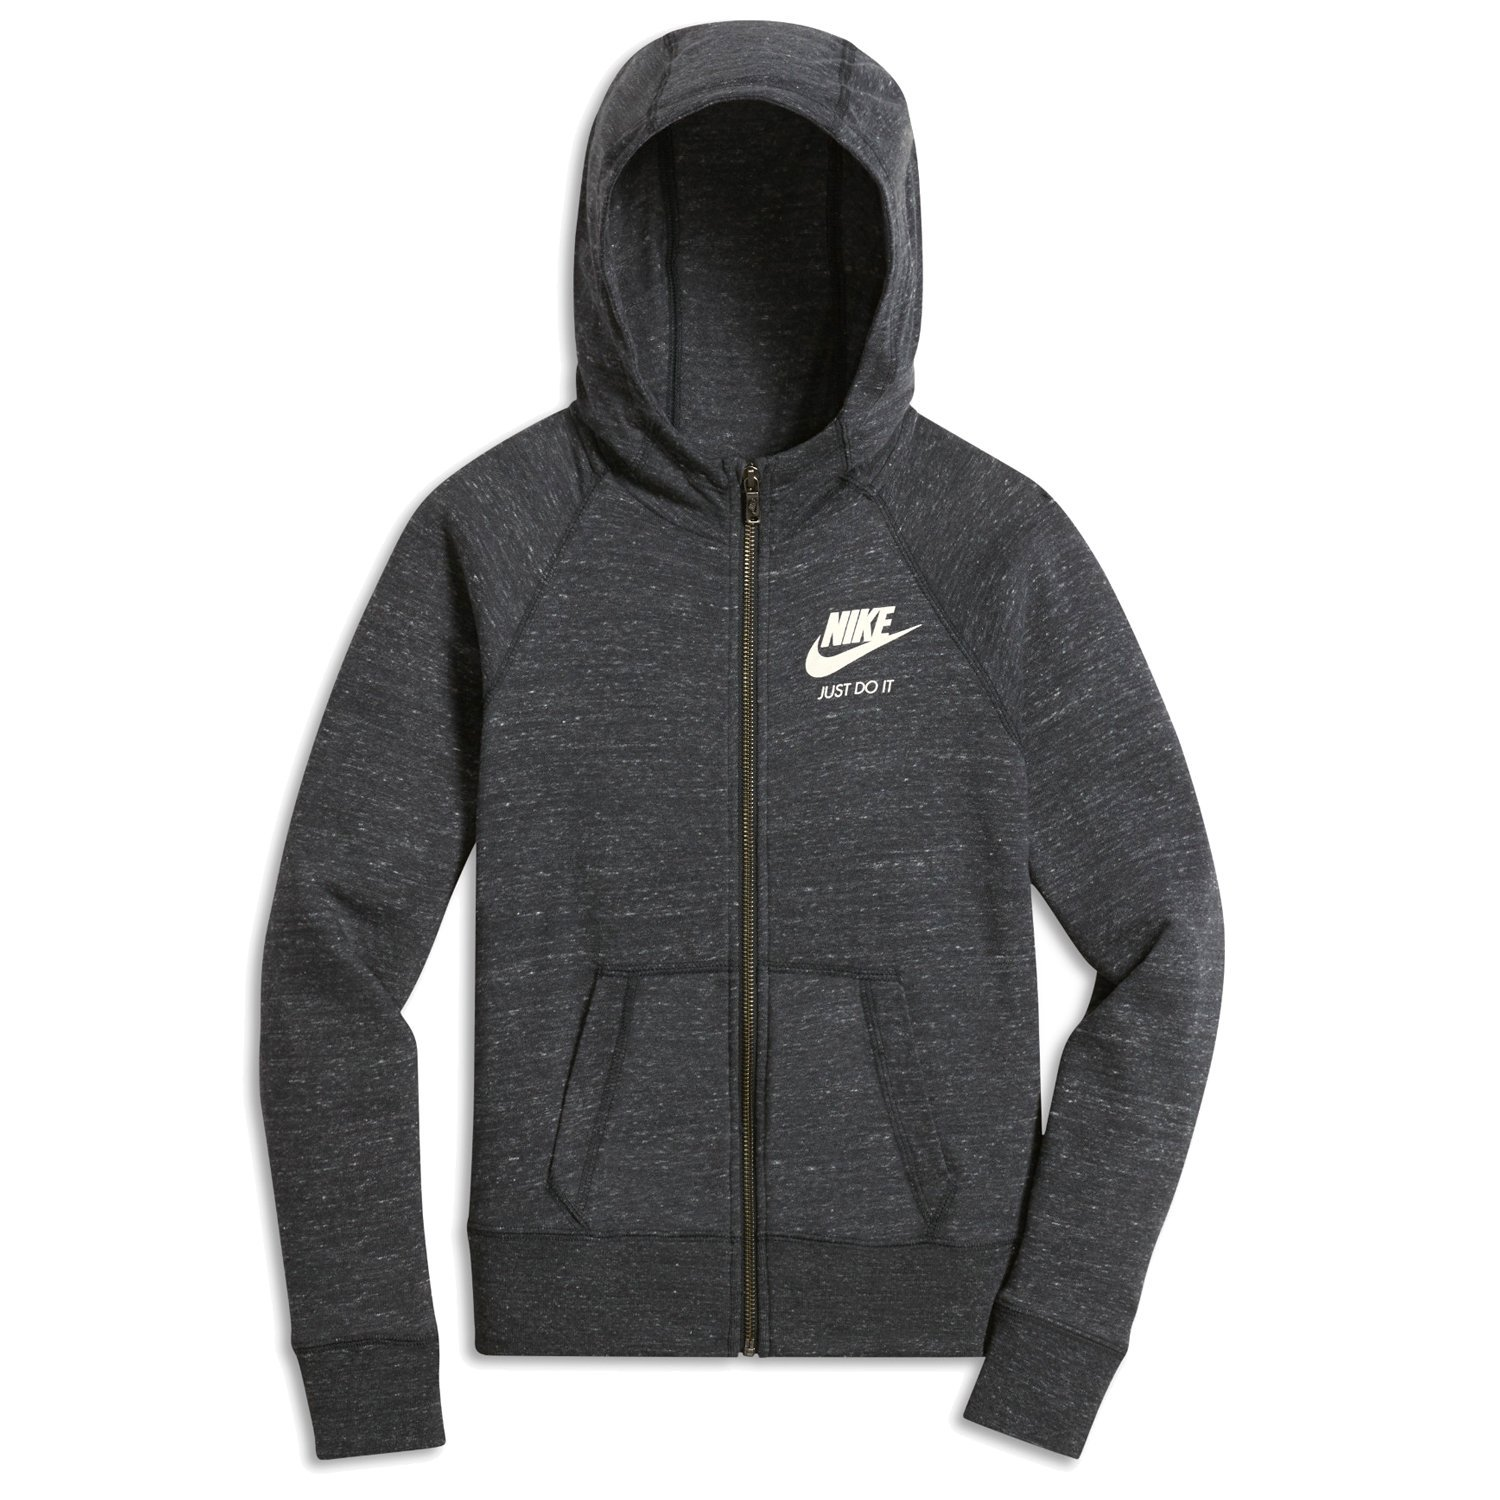 95d0c10fff Get Quotations · Nike Sportswear Gym Vintage Big Kids' (Girls') Hoodie